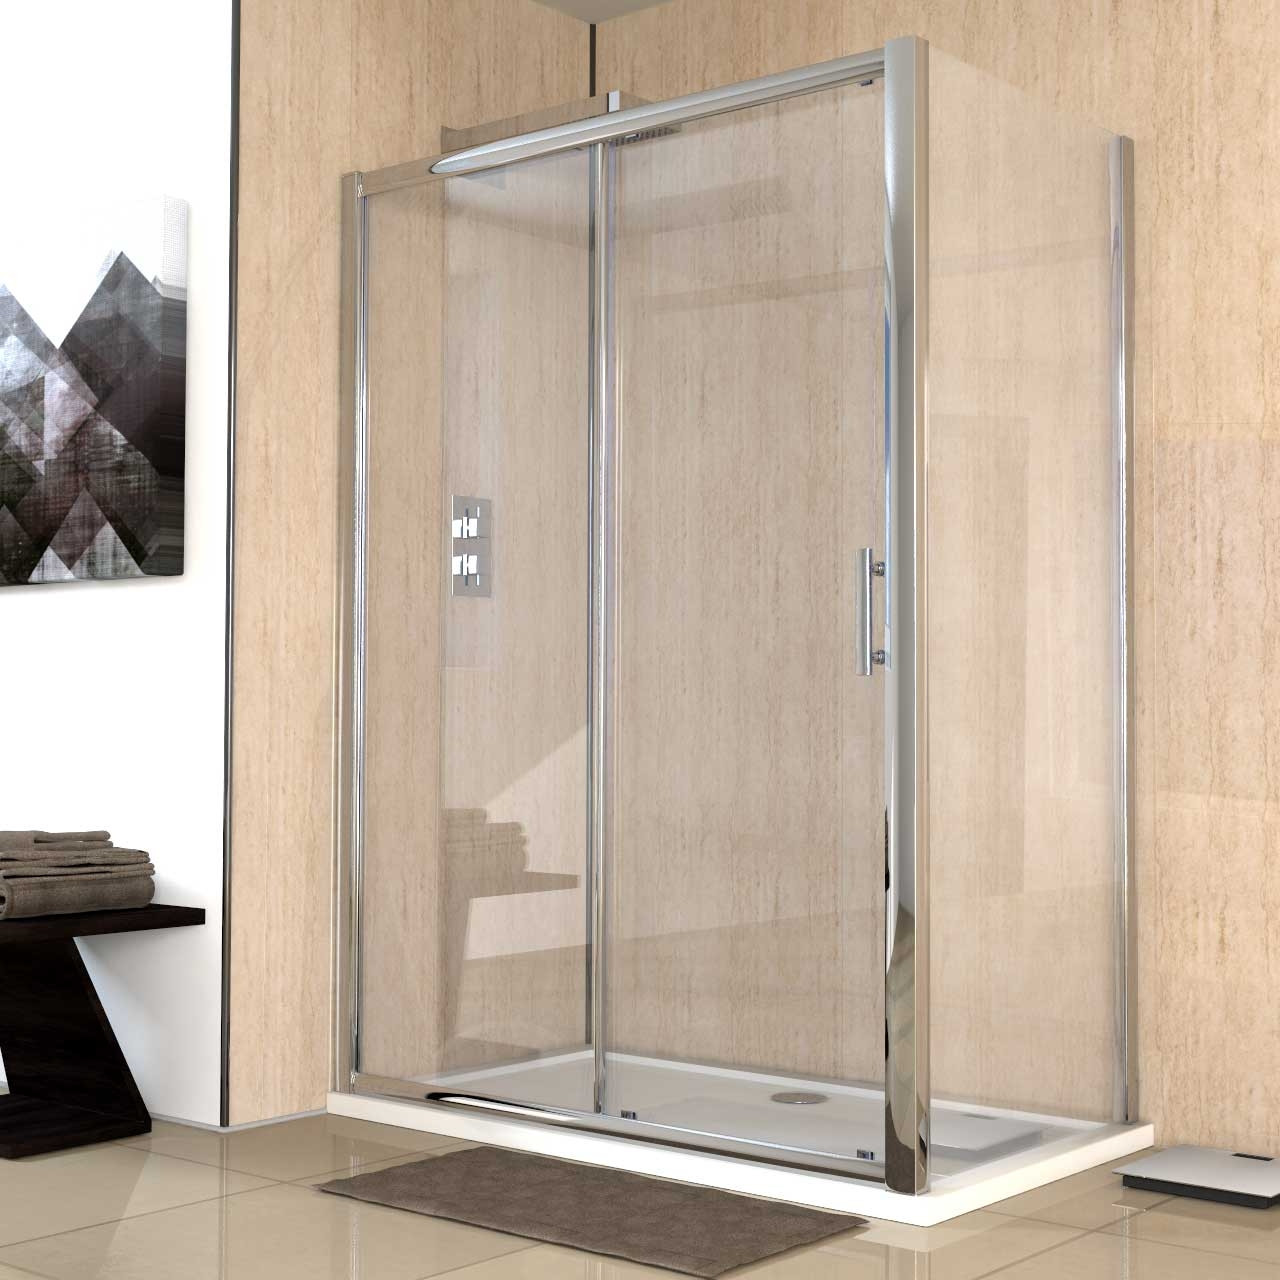 Series 8 1400 x 800 Sliding Door Enclosure